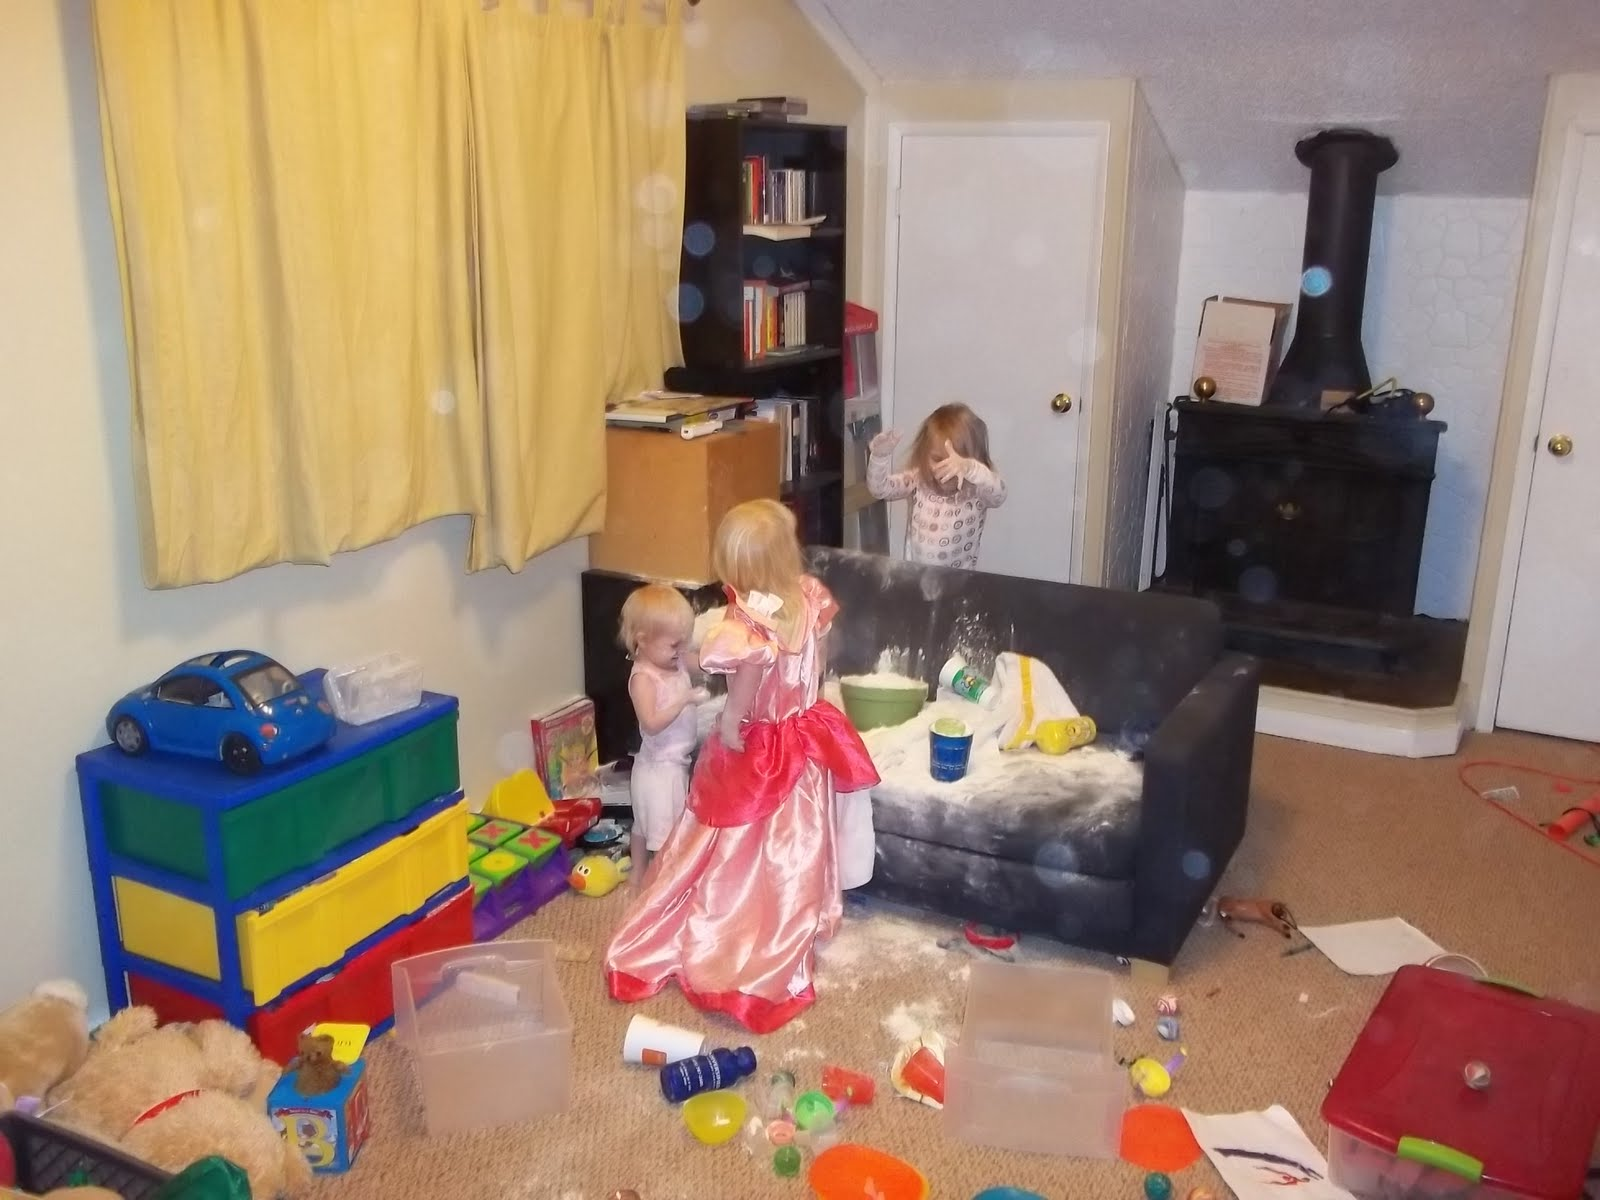 How to clean your living room in 5 minutes - Yes Friends That Is Flour About 3lbs Worth Of It Too I M Guessing That Was Not Fun To Clean Up I Pulled Out The Vacuum But Of Course The Princess